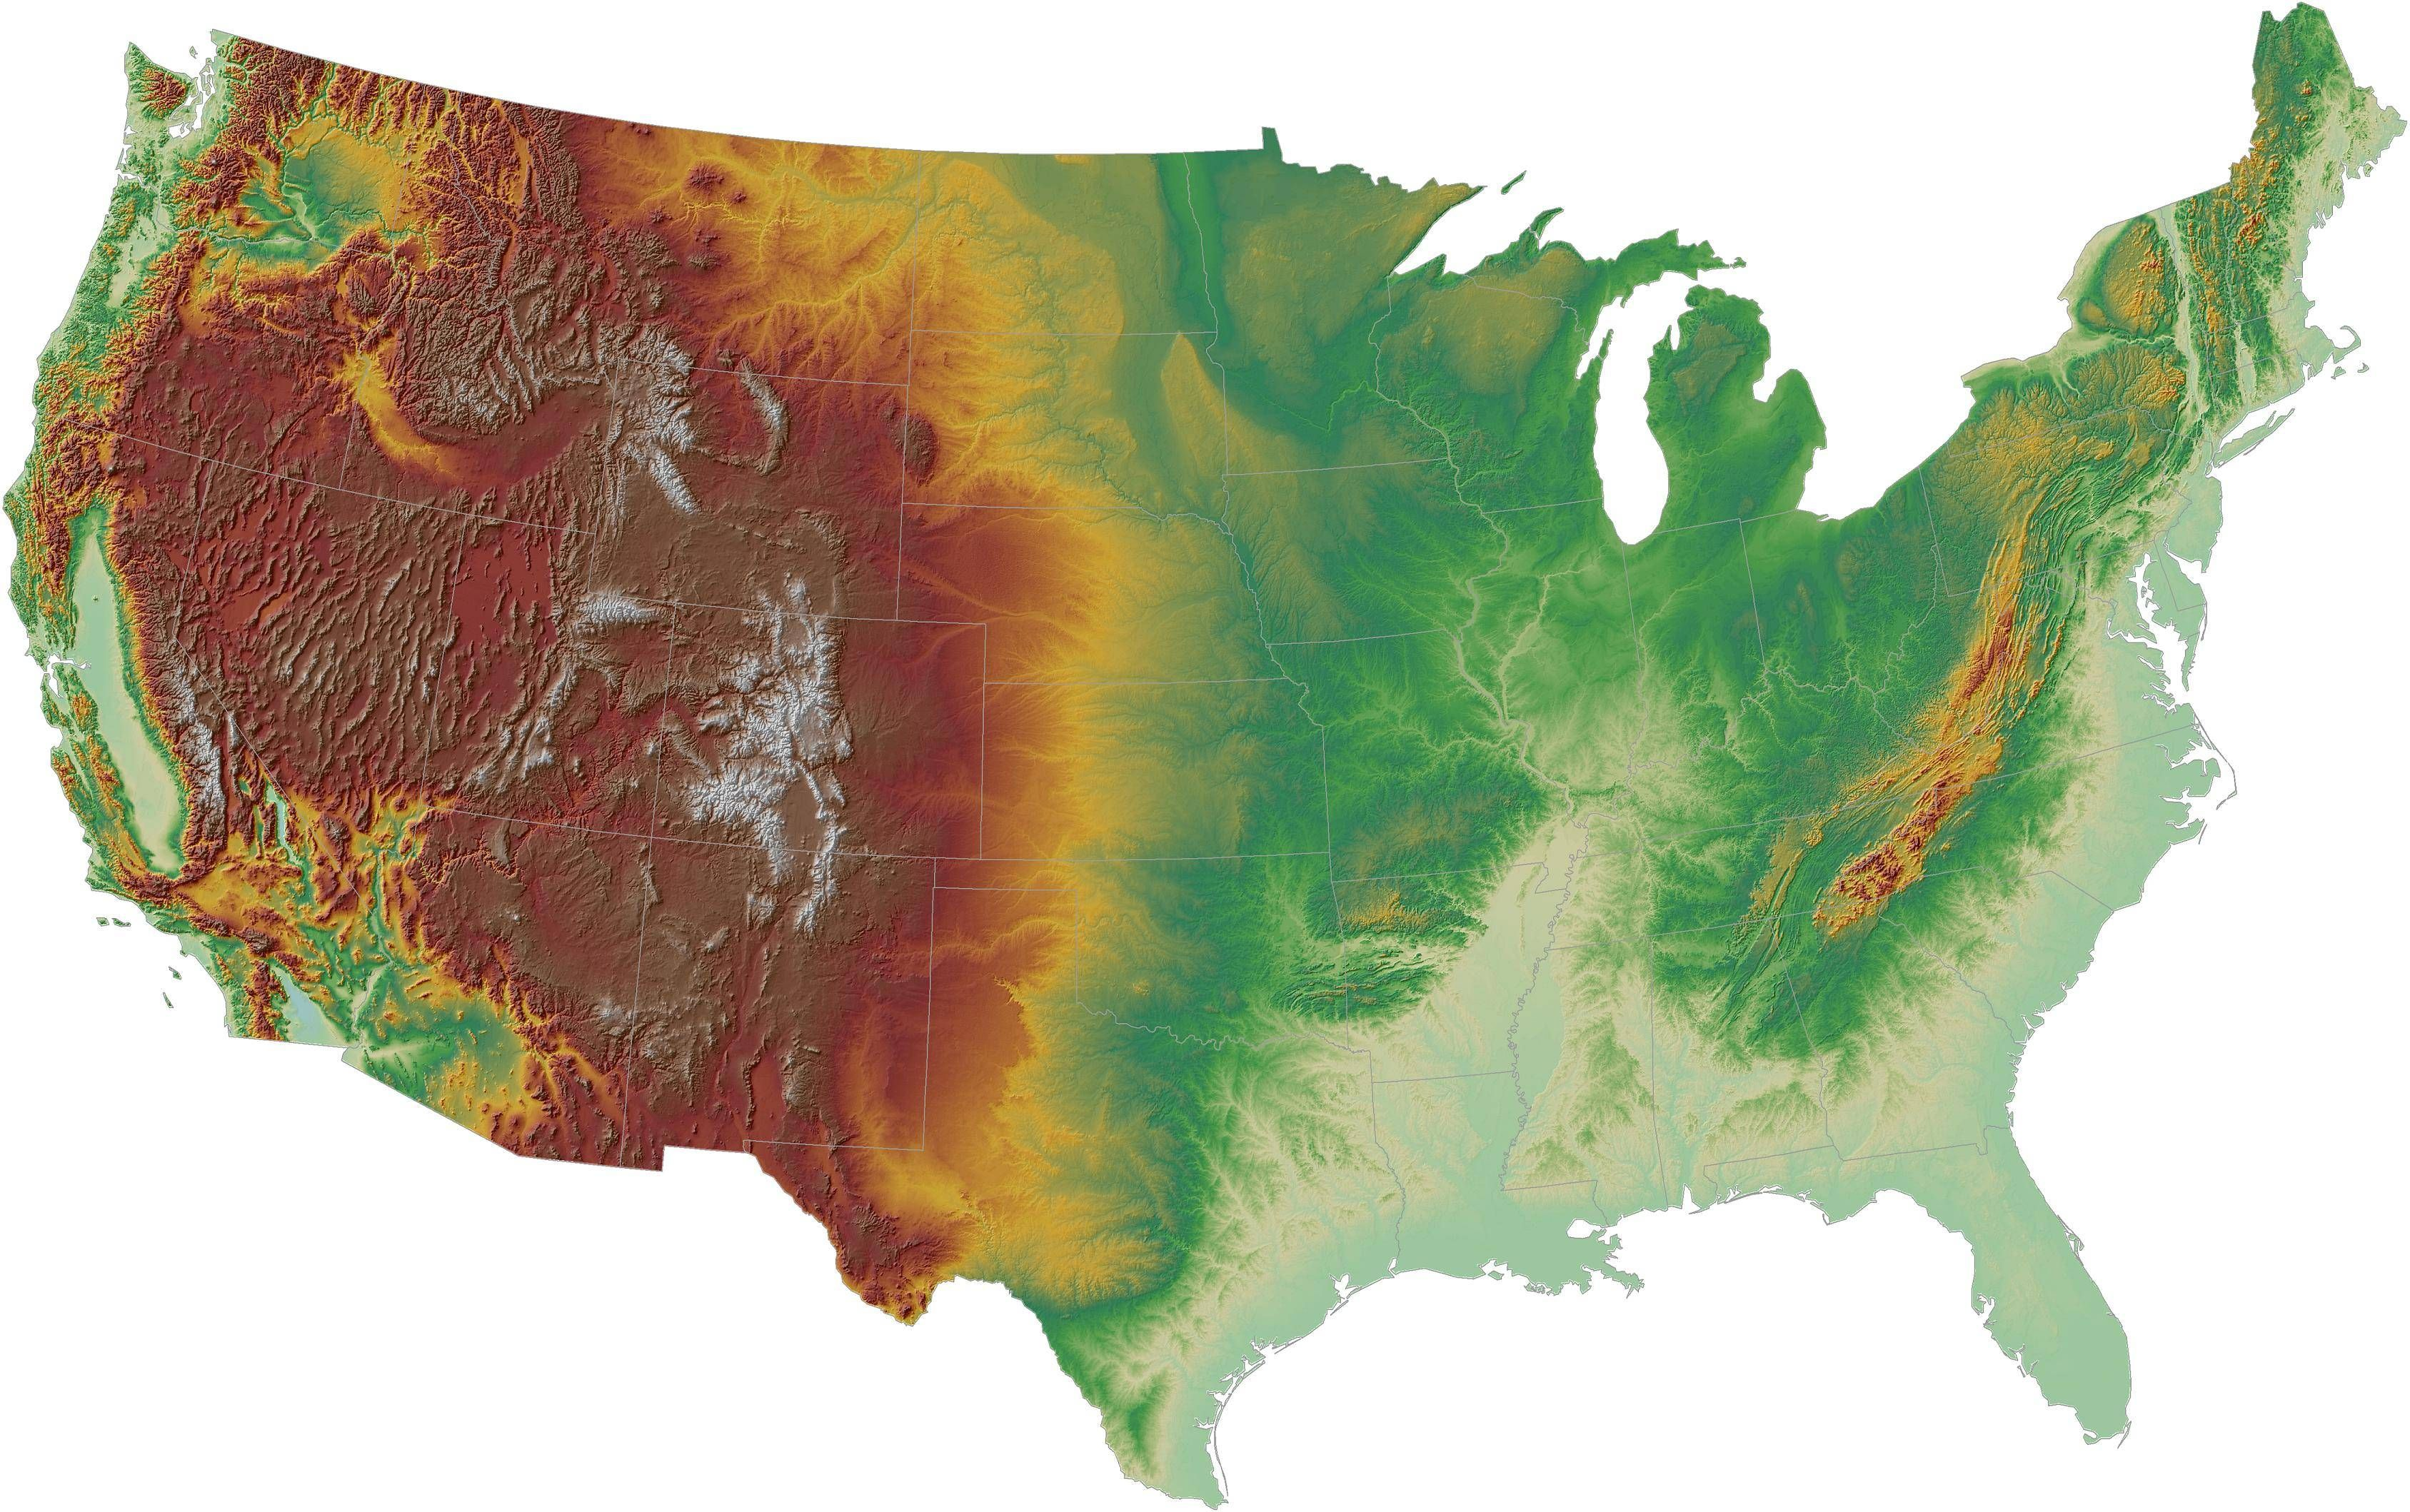 Digital Elevation Model Of The Contiguous United States